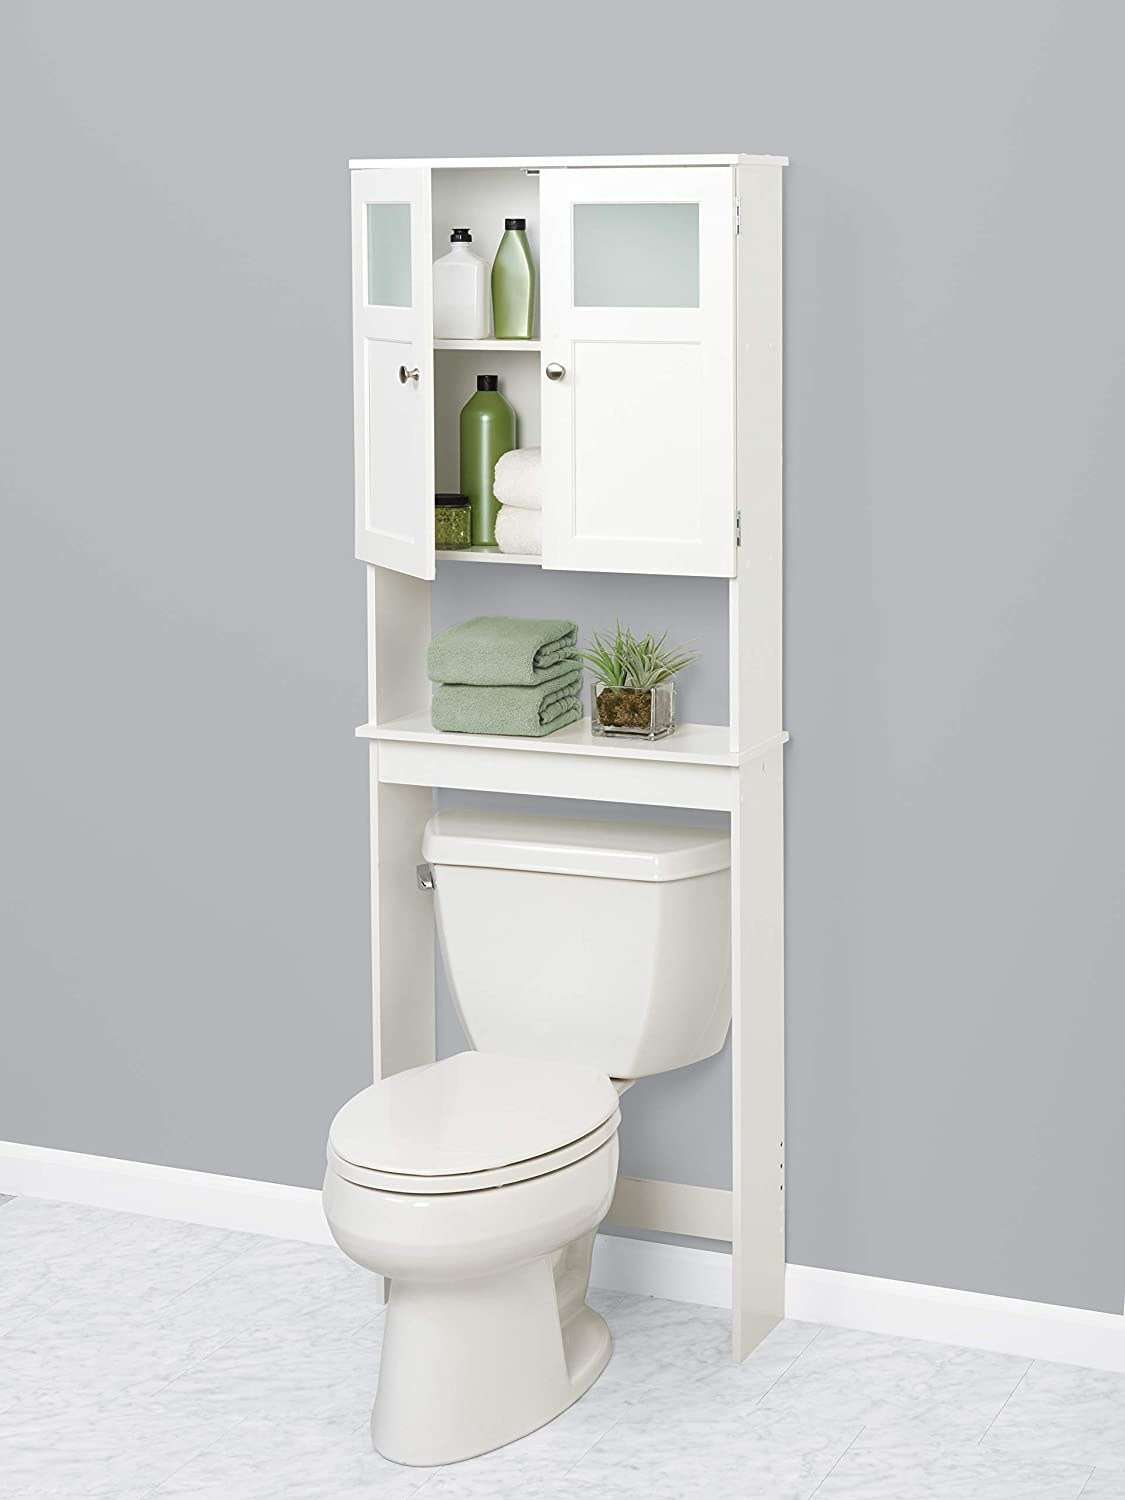 A cabinet with shelves that goes over the toilet